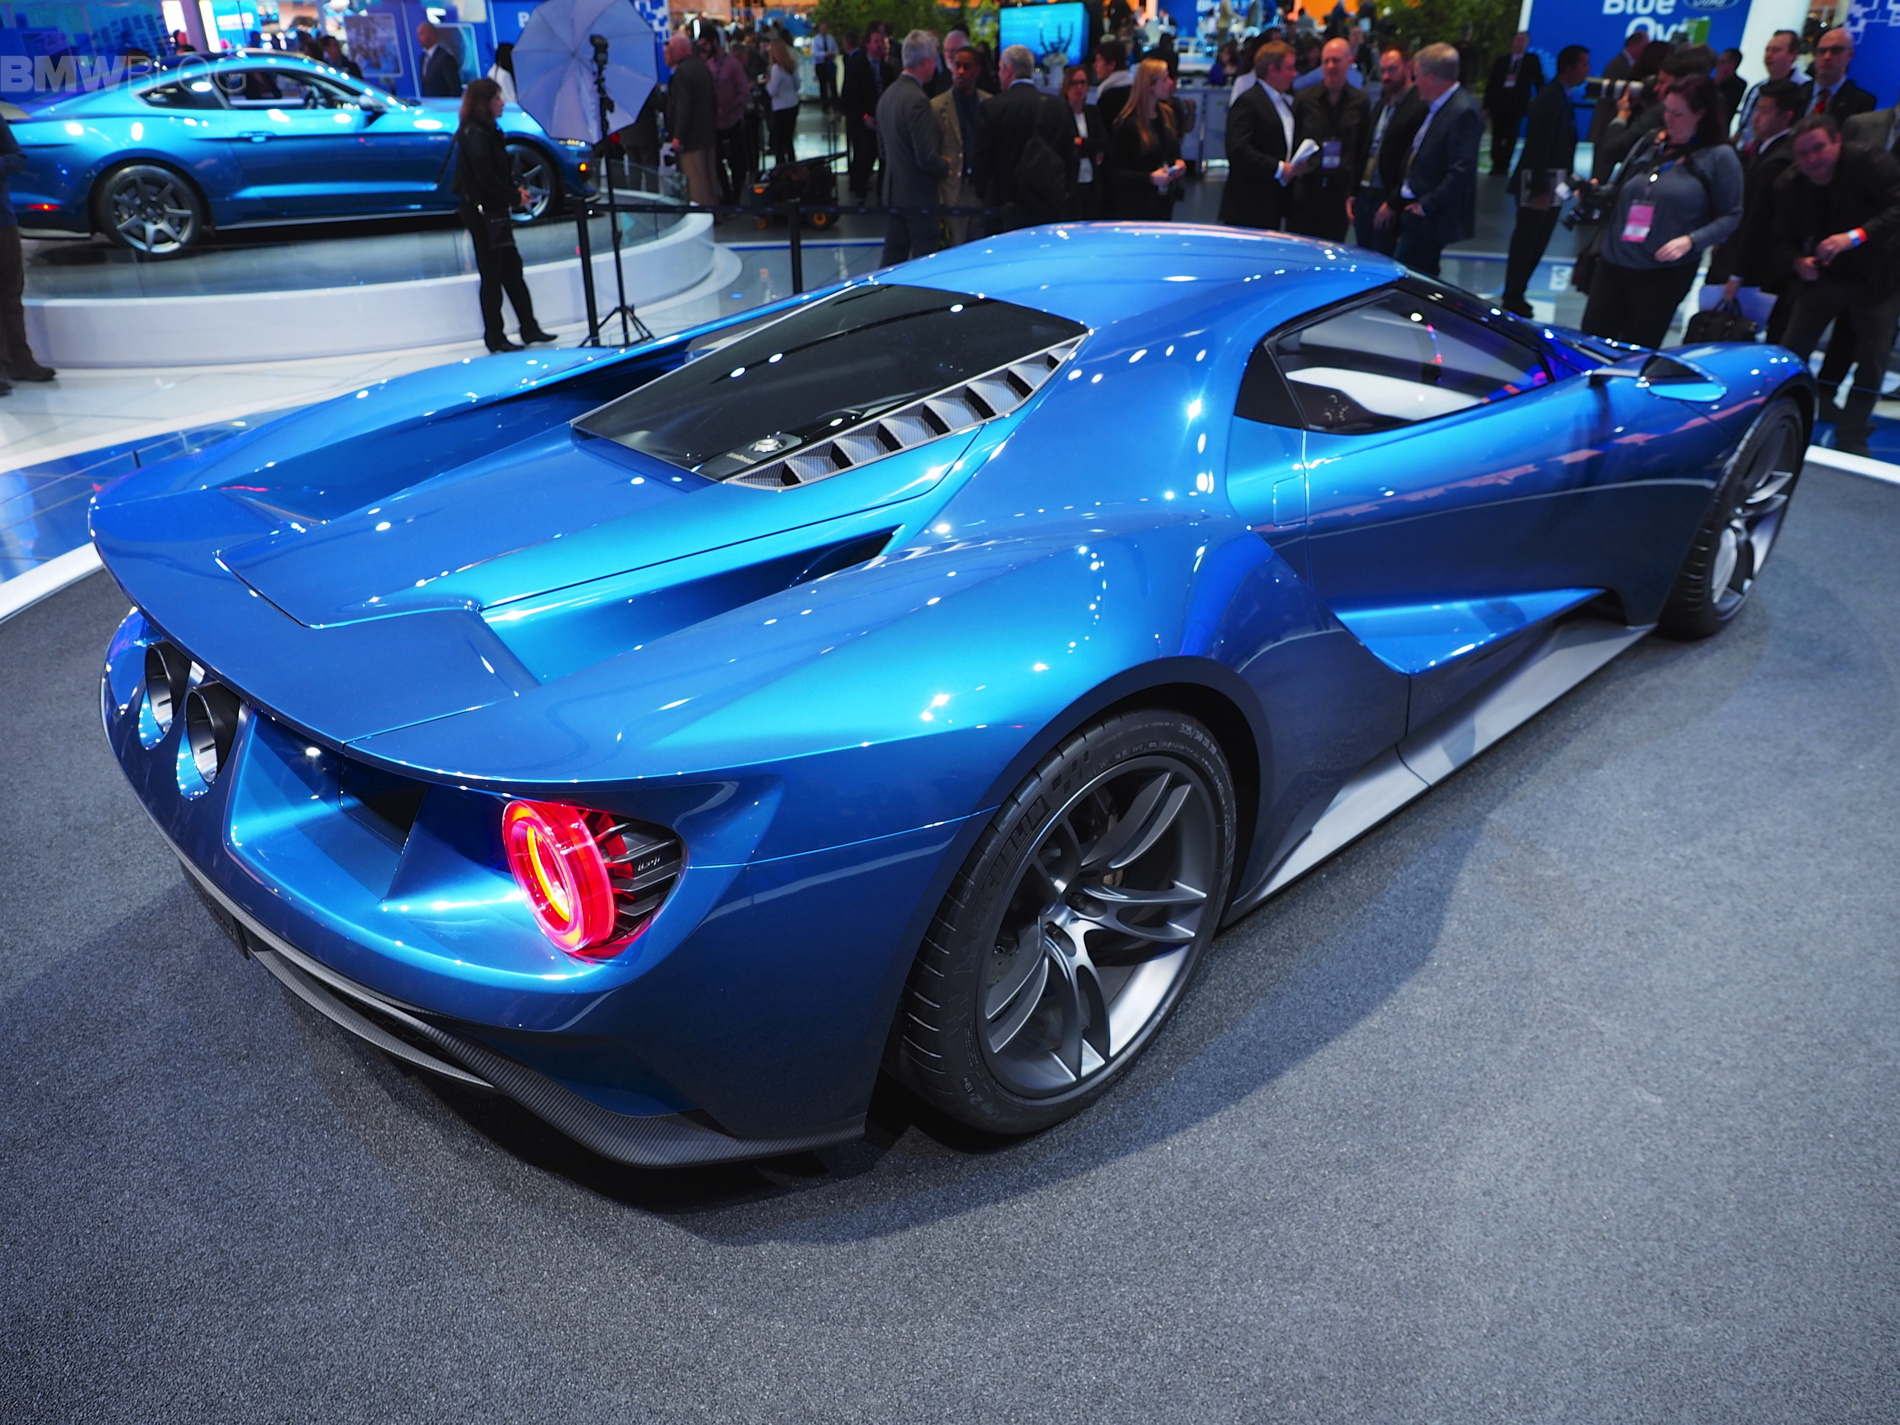 Ford GT comes to 2015 Detroit with 600 horsepower